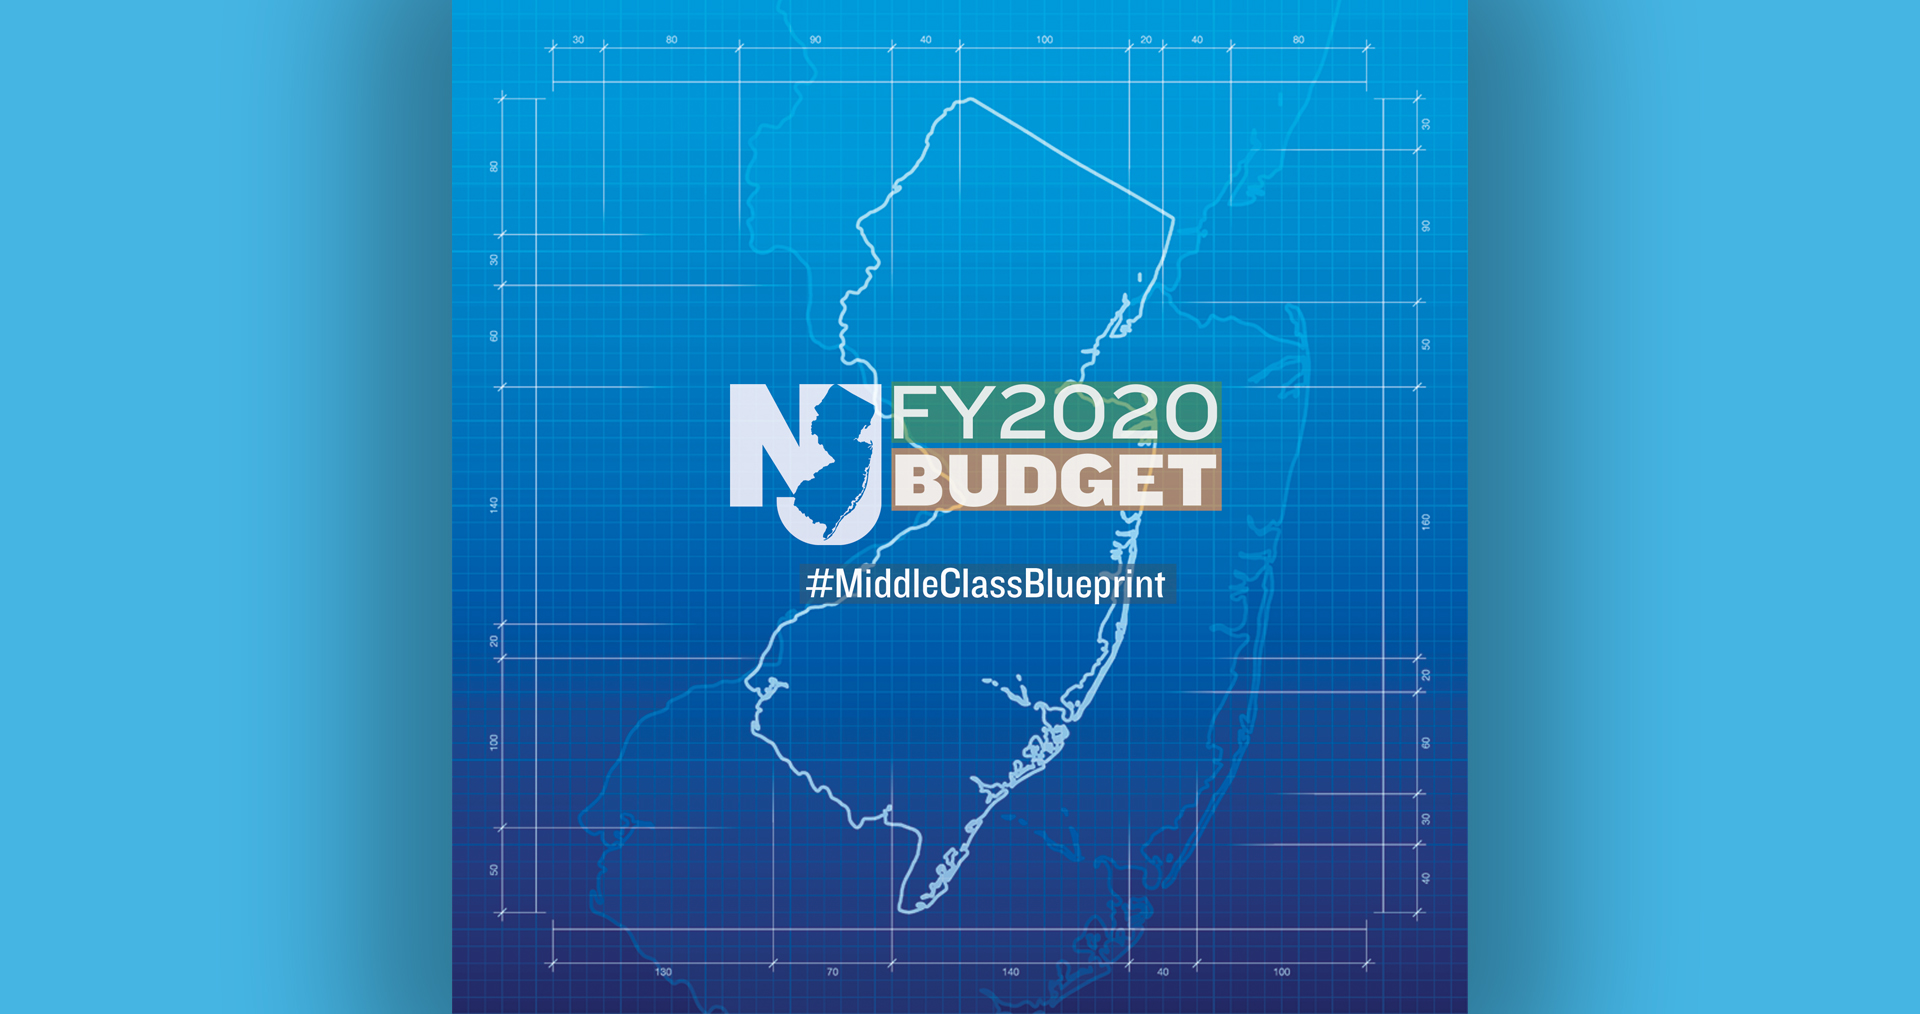 NJ OMB - Office of Management and Budget (OMB)